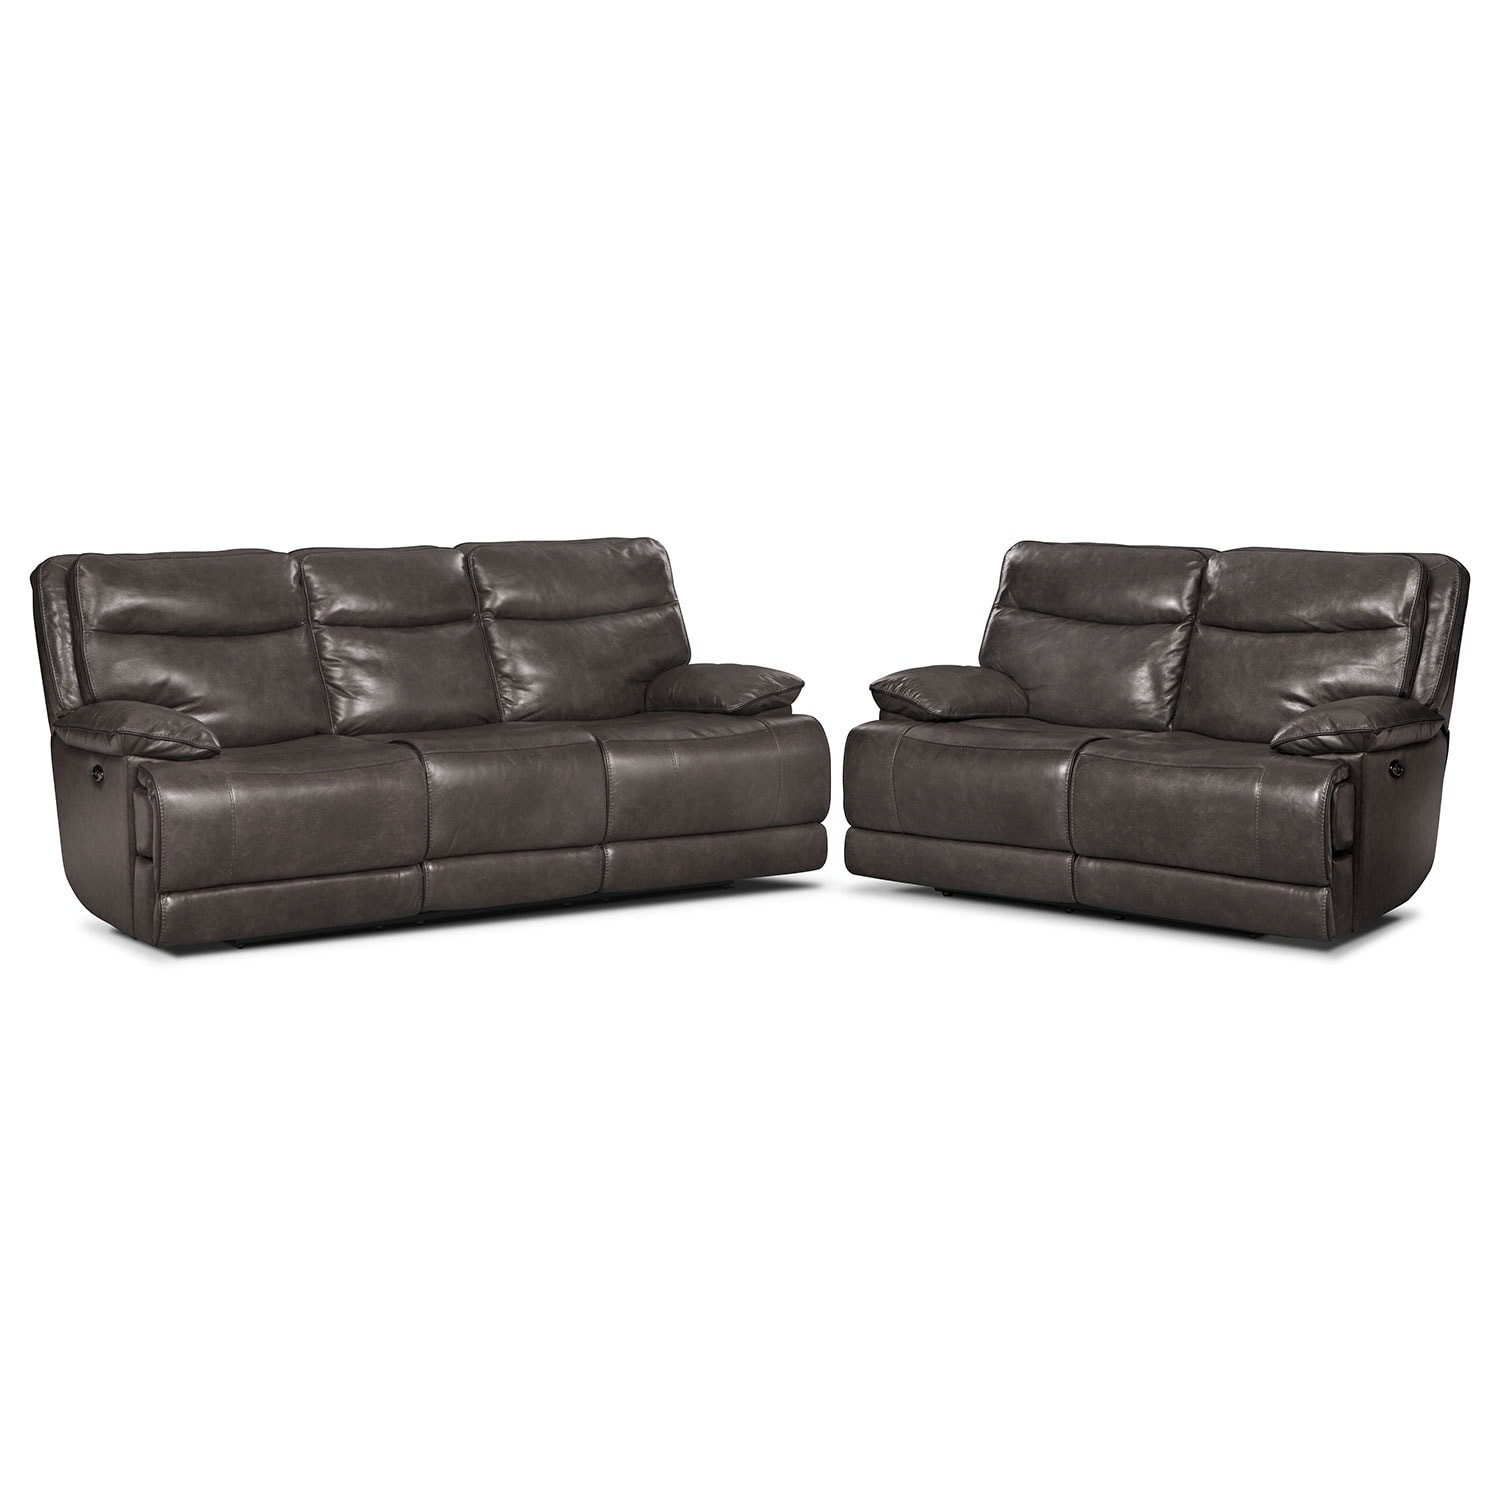 Living Room Furniture - Monaco 2 Pc. Power Reclining Living Room